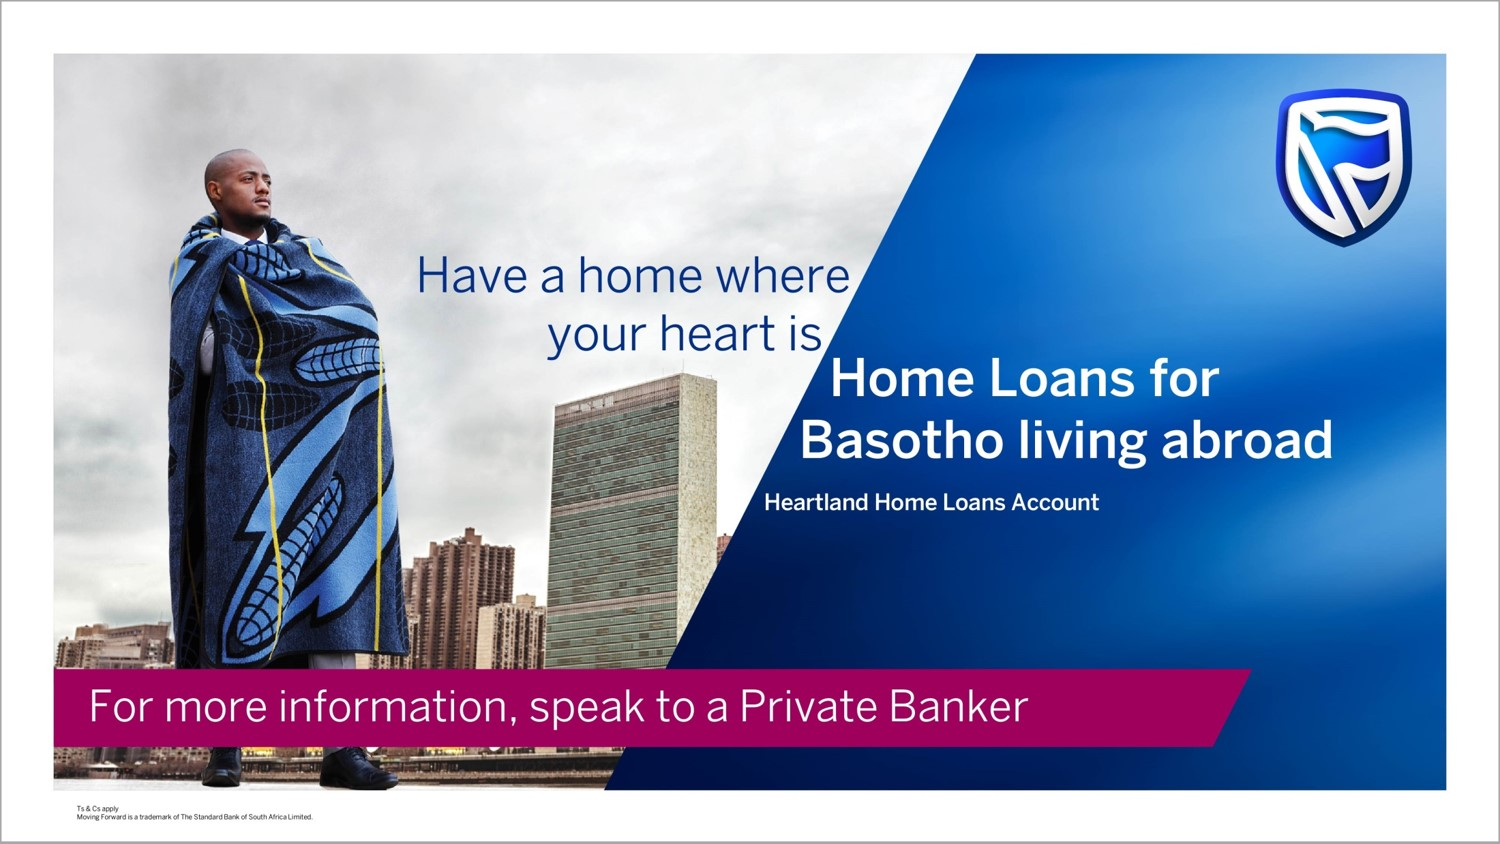 Standard Bank Home Loans Contact Number